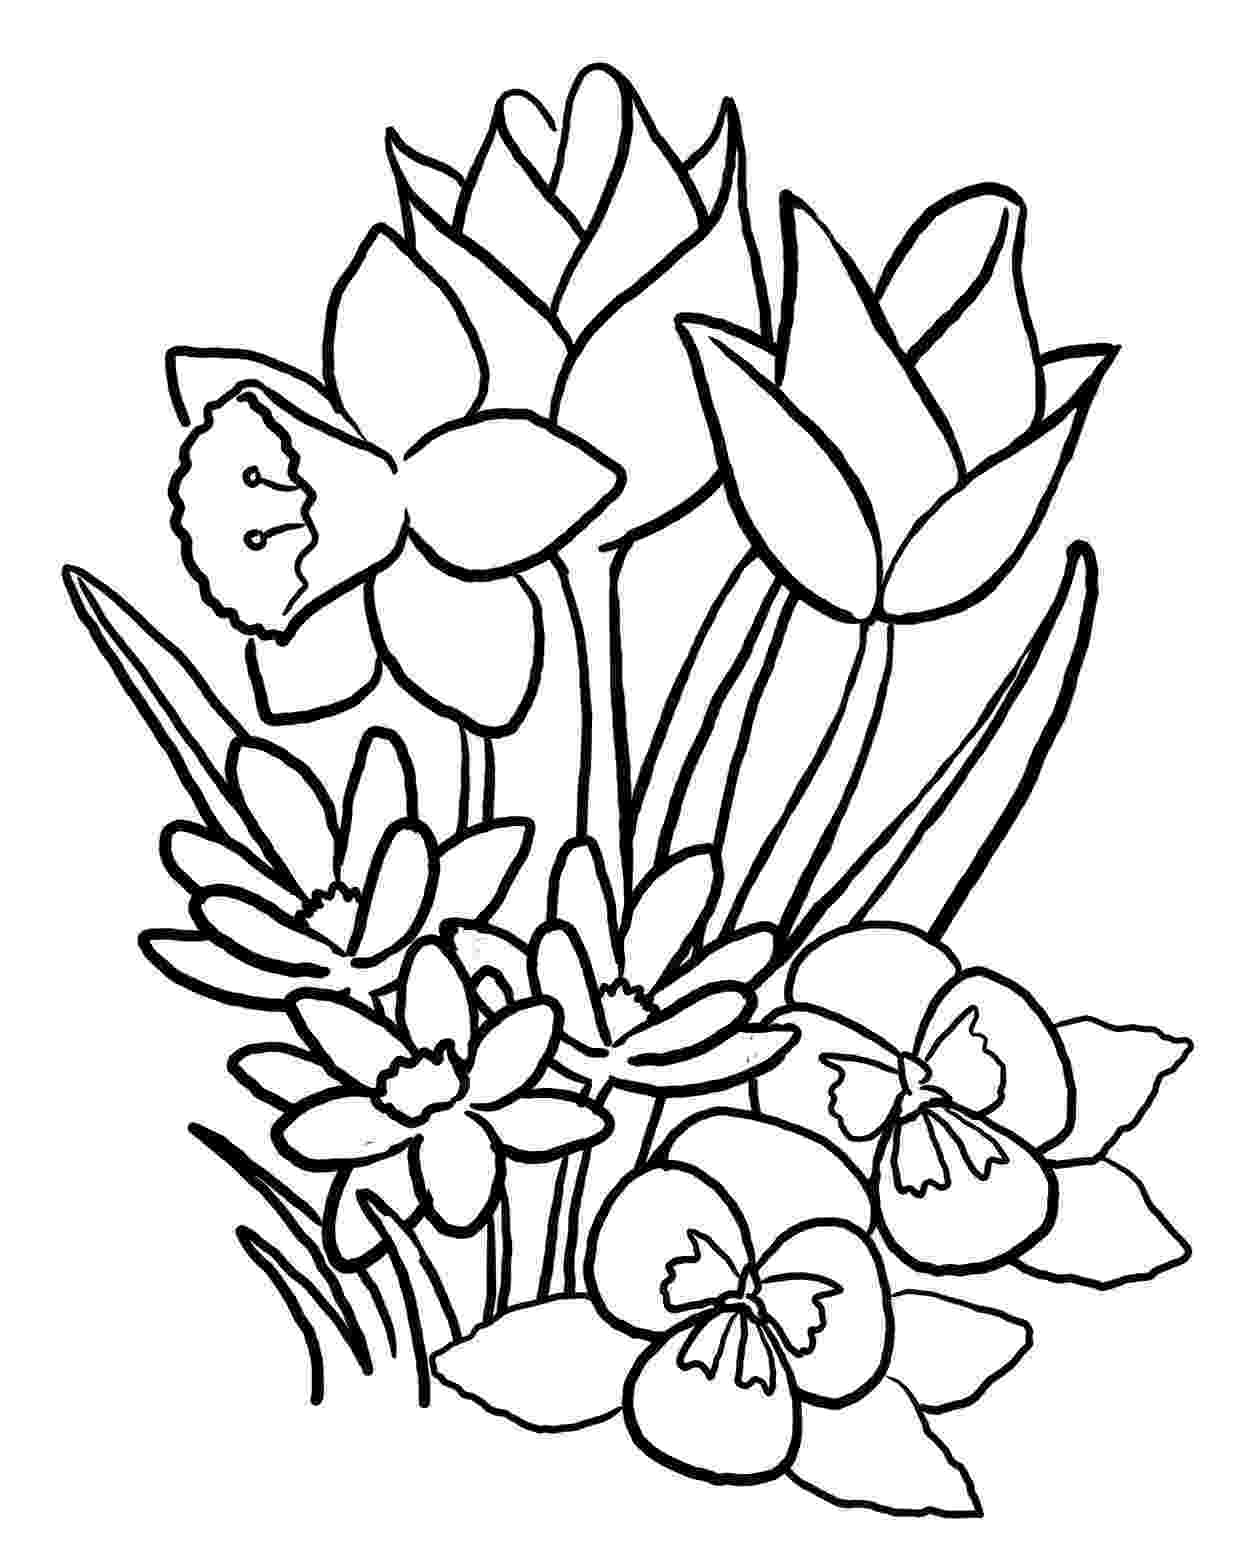 flower for coloring free printable flower coloring pages for kids best flower coloring for 1 2